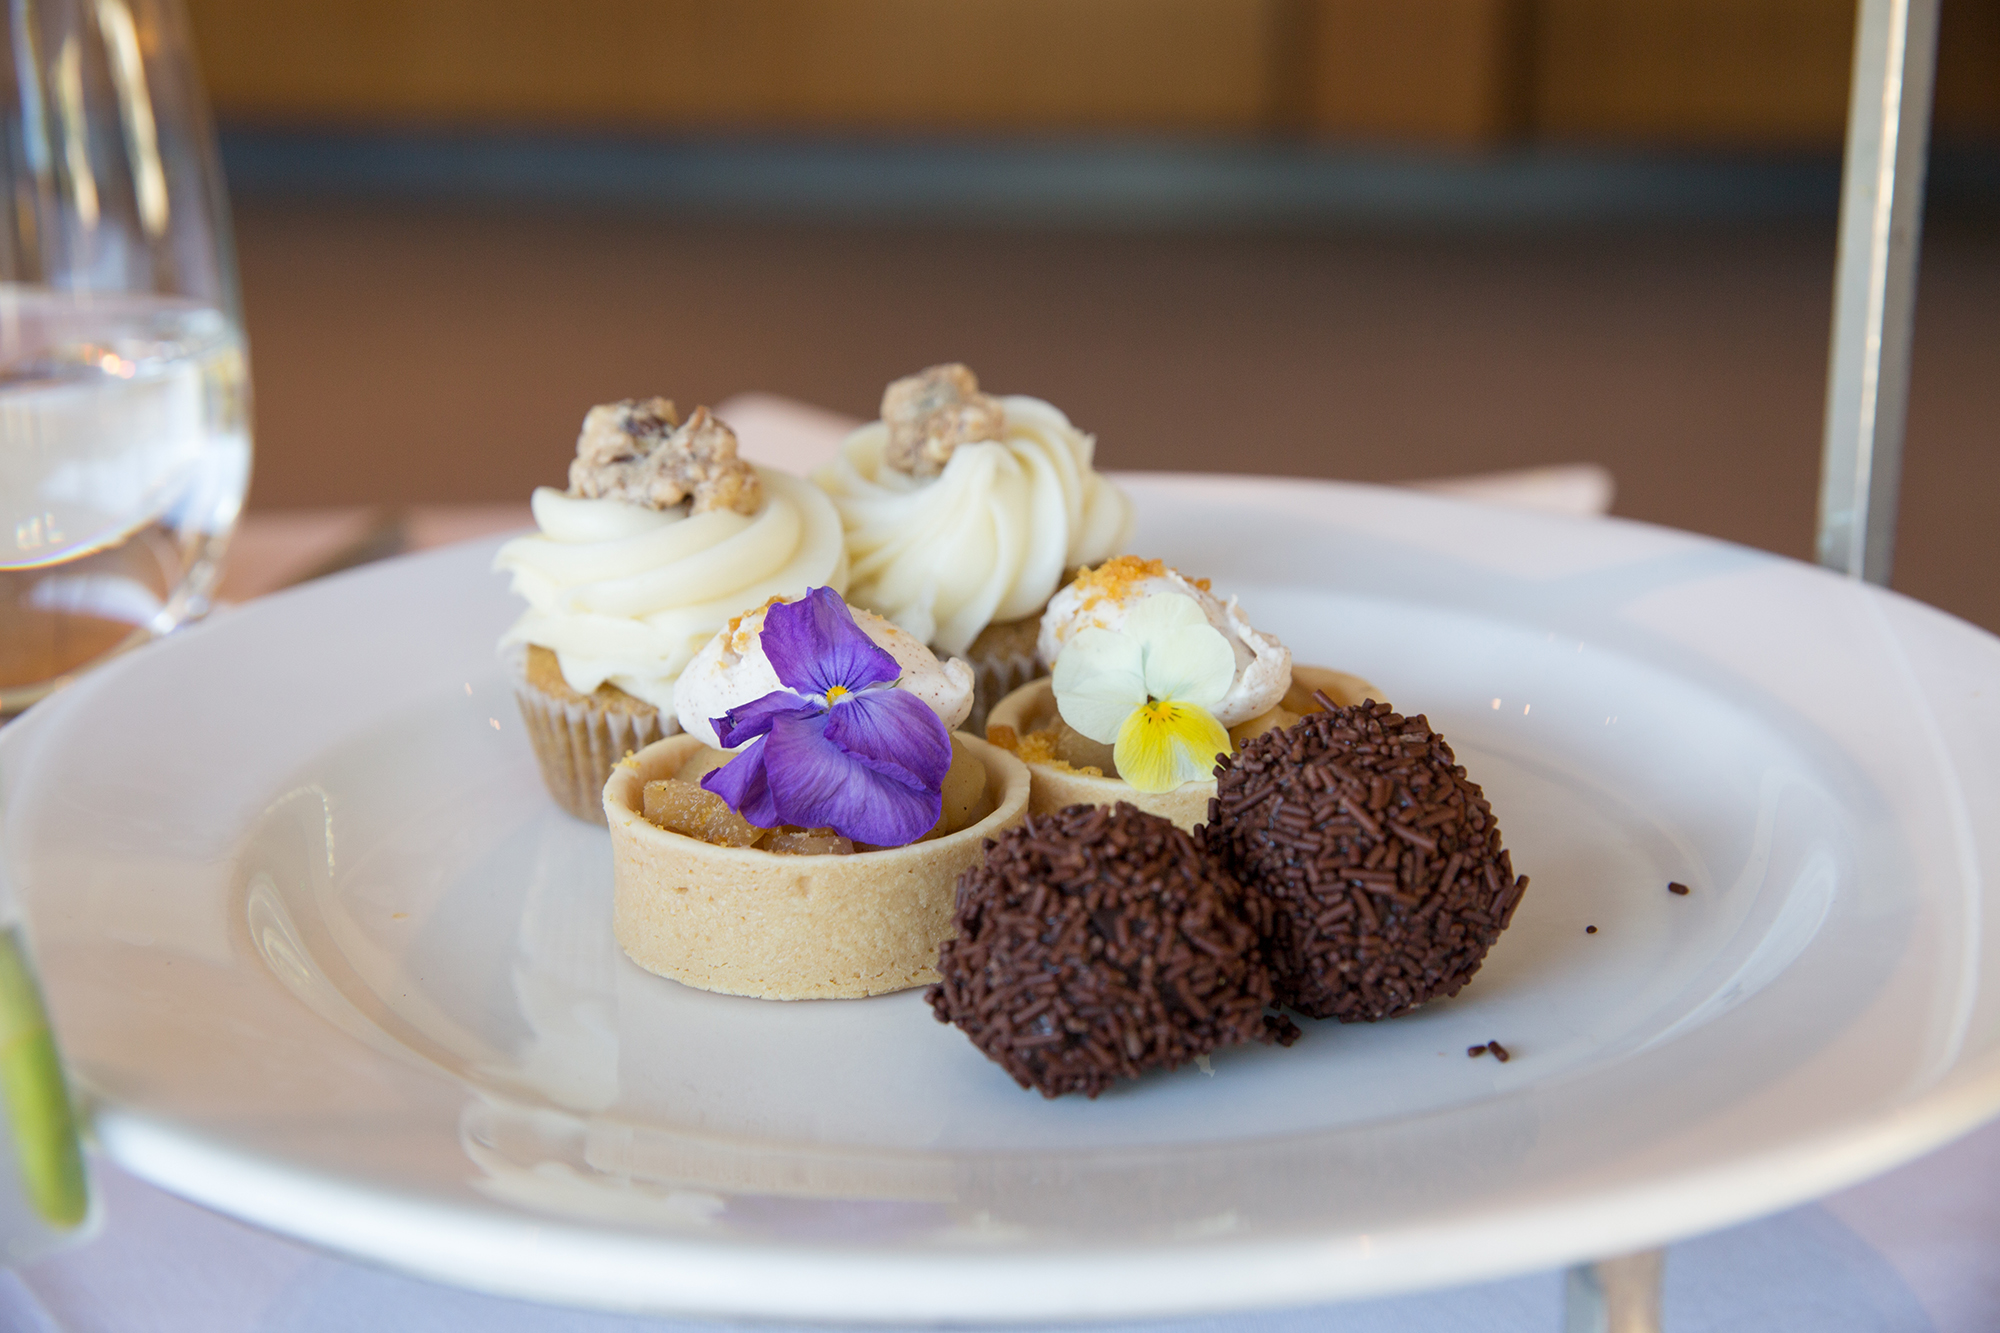 MRS. GARRET'S CARROT CAKE/ SPICED CHOCOLATE TRUFFLE/ APPLE CARAMEL TARTLET